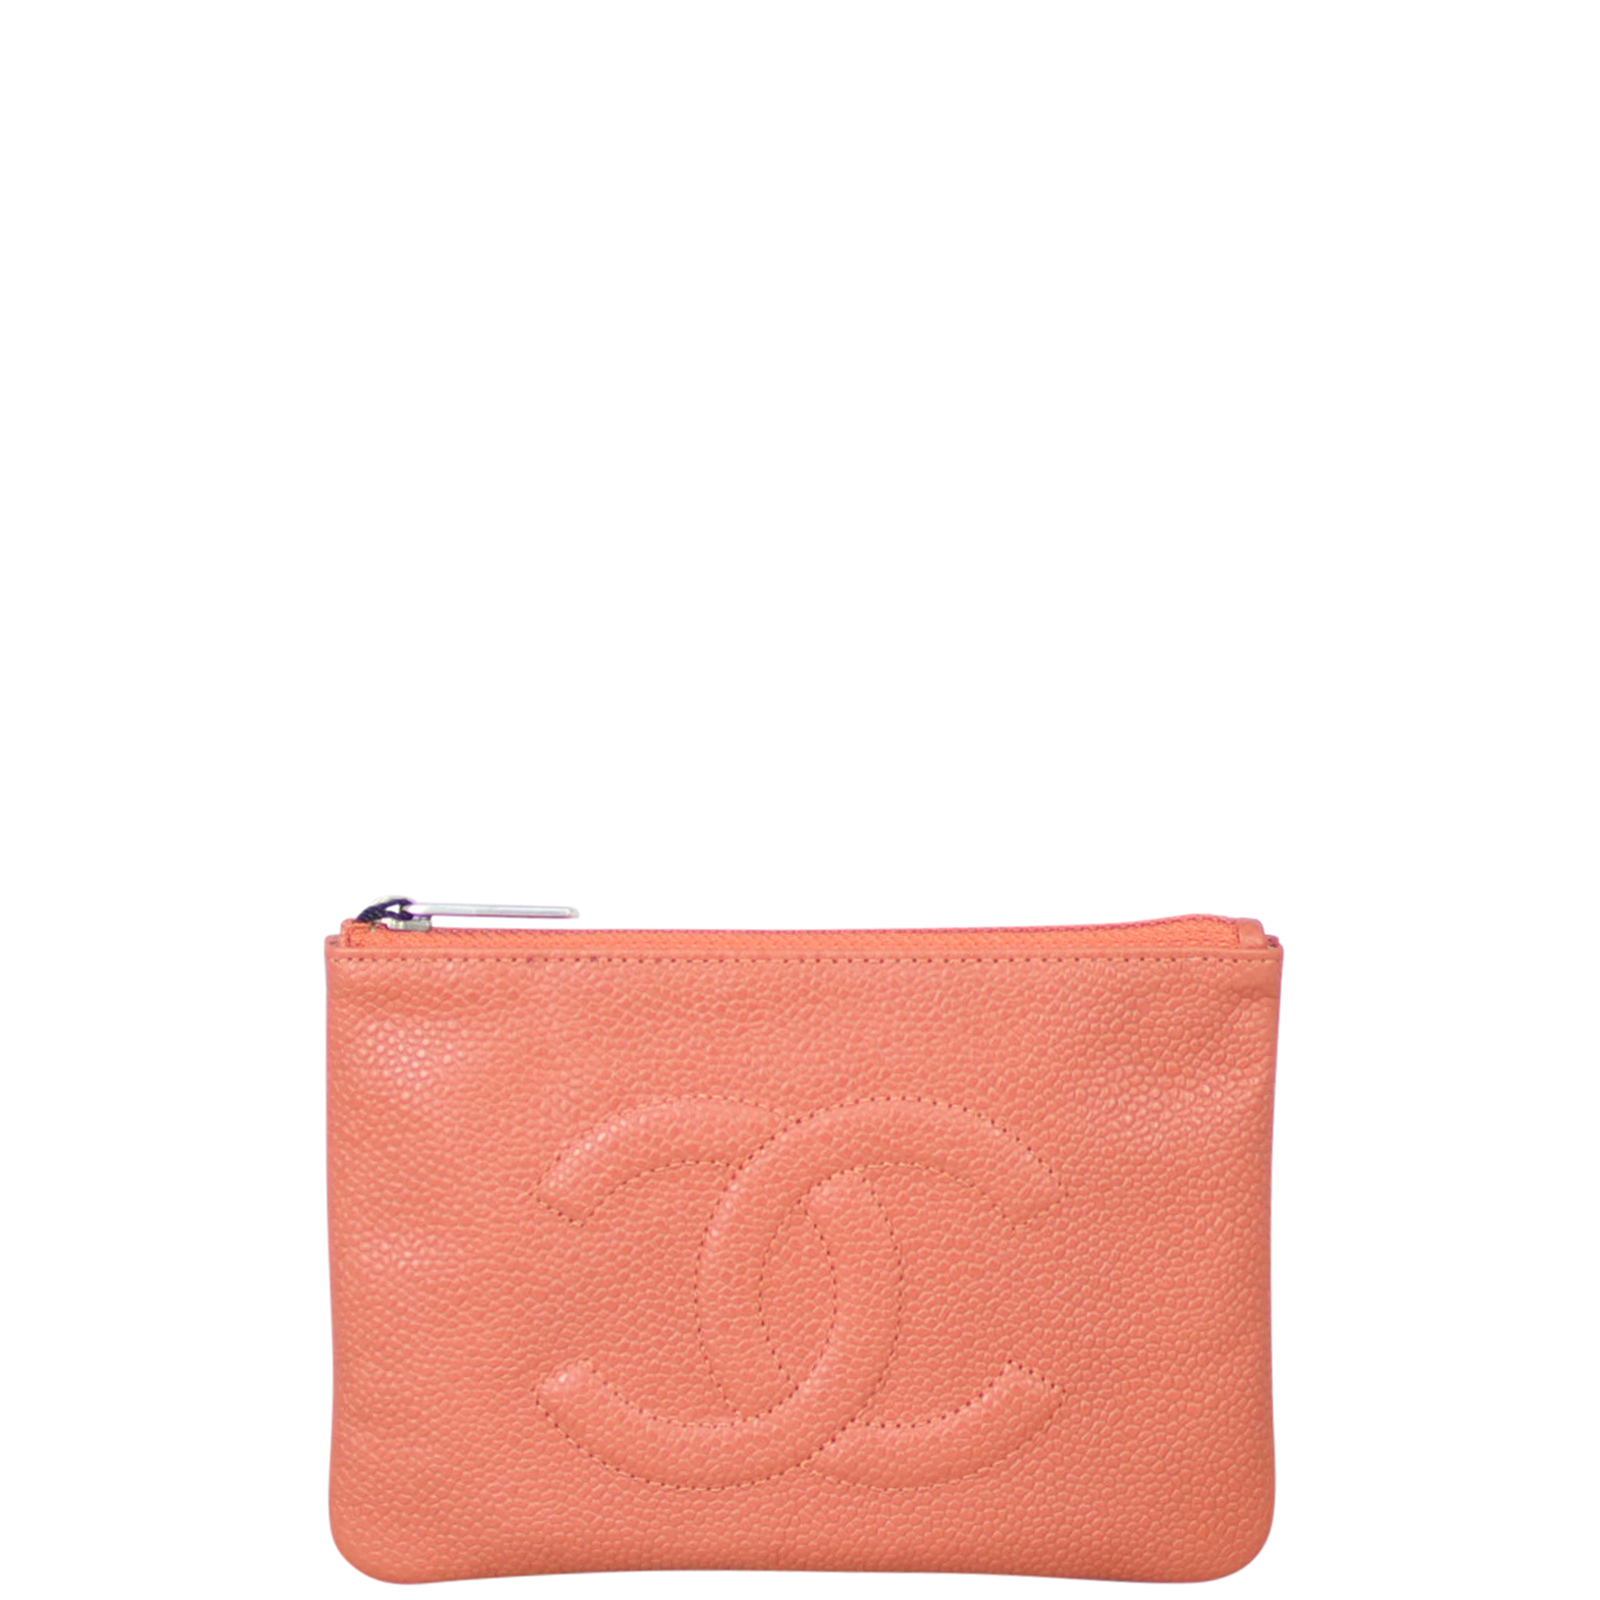 Crafted from supple caviar leather, the Chanel Timeless O-Case Small is a modern, versatile accessory. It can be carried as a clutch for day or evening or slipped inside a larger bag. Featuring the iconic CC logo stitched on the front and in a fresh summery shade, this is the sweetest Chanel around. Features: 'Brique Clair' coral caviar leather exterior; silver tone hardware; top zip closure to main compartment; and silver textile lined interior. Origin: Made in France. Measurements: 15.5 cm (le